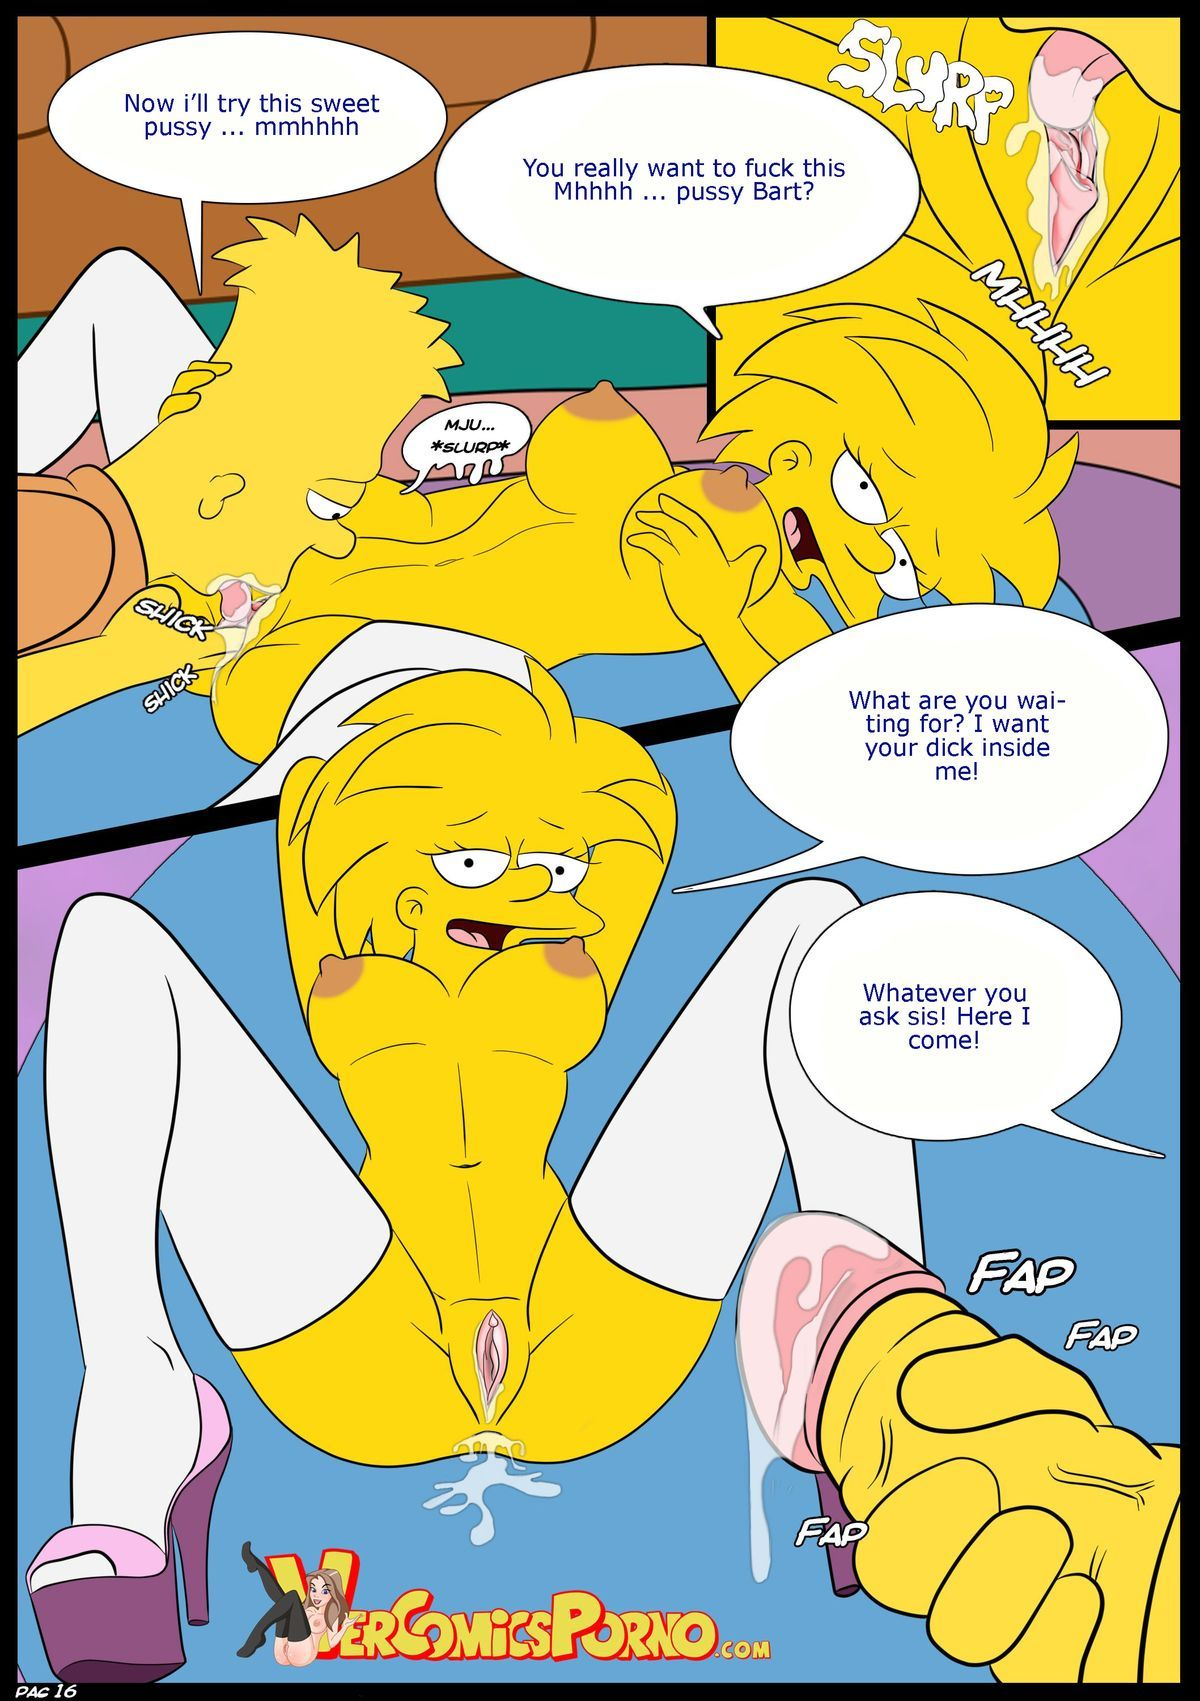 17 22 - The Simpsons. Part 2.